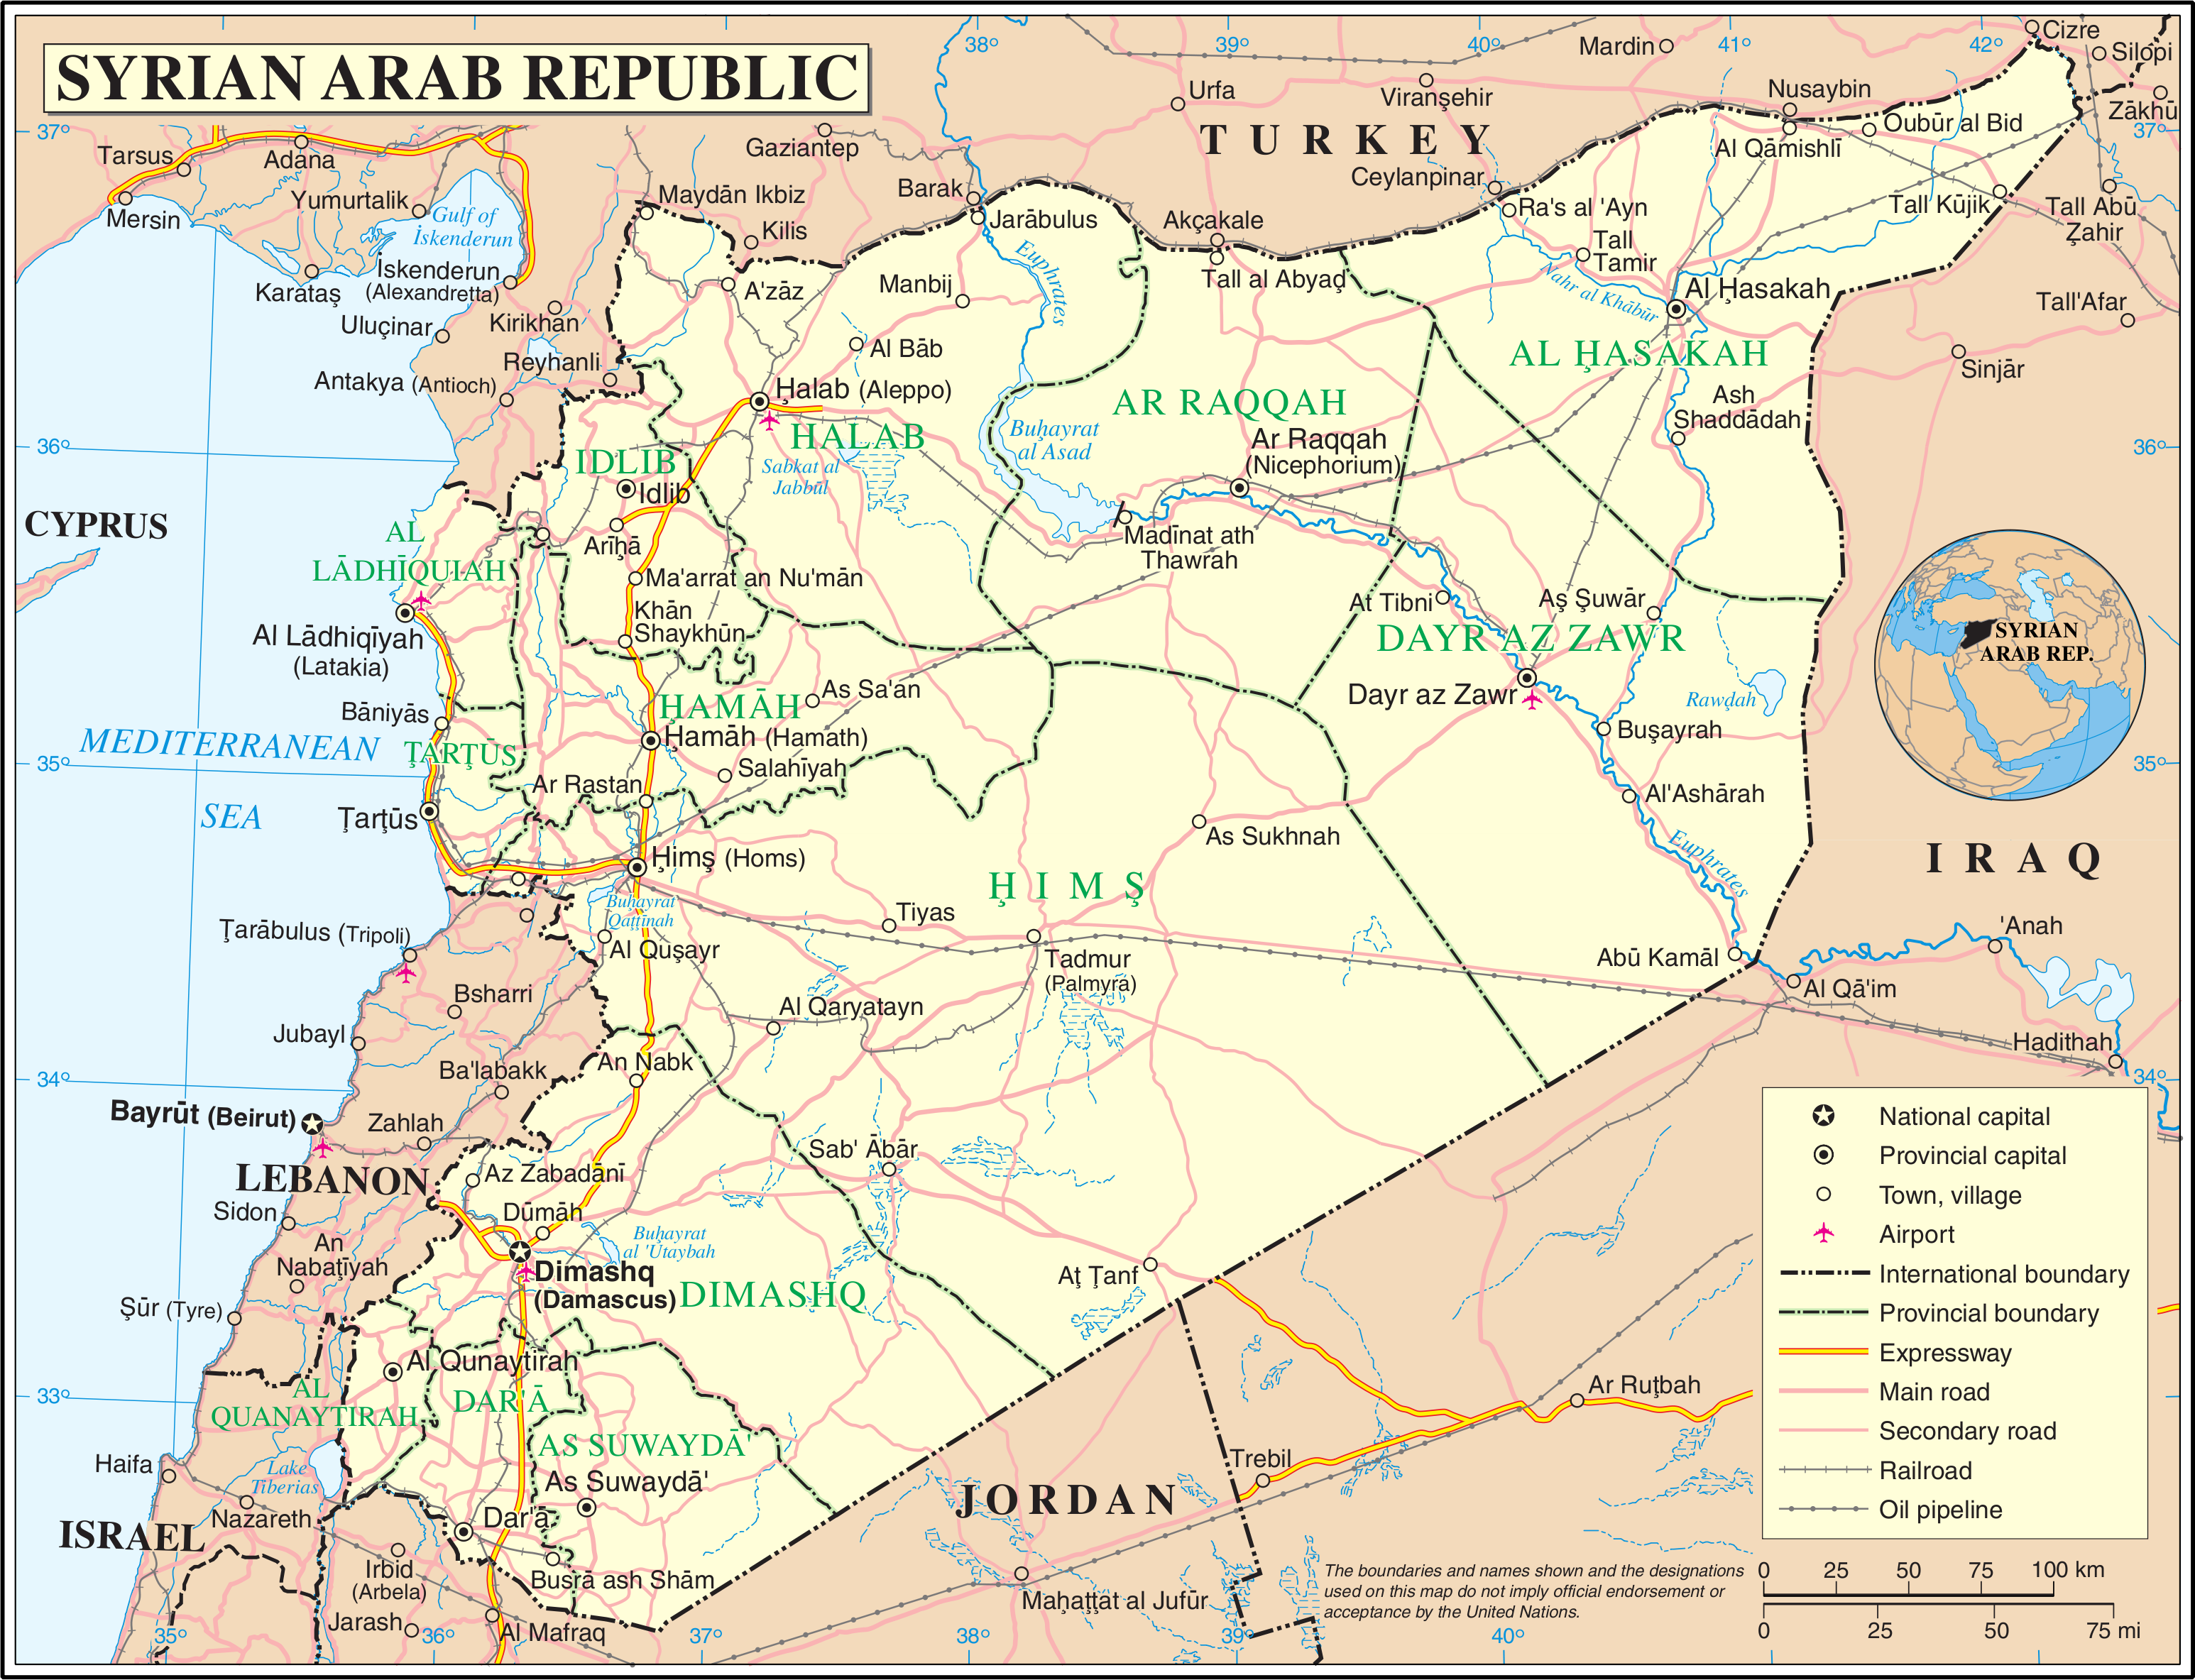 aleppo map syria with Syria on Carte furthermore 1the Silk Road A Plan together with 1 Samuel Chapter 14 moreover 76471 likewise Landkarte Von Syrien.